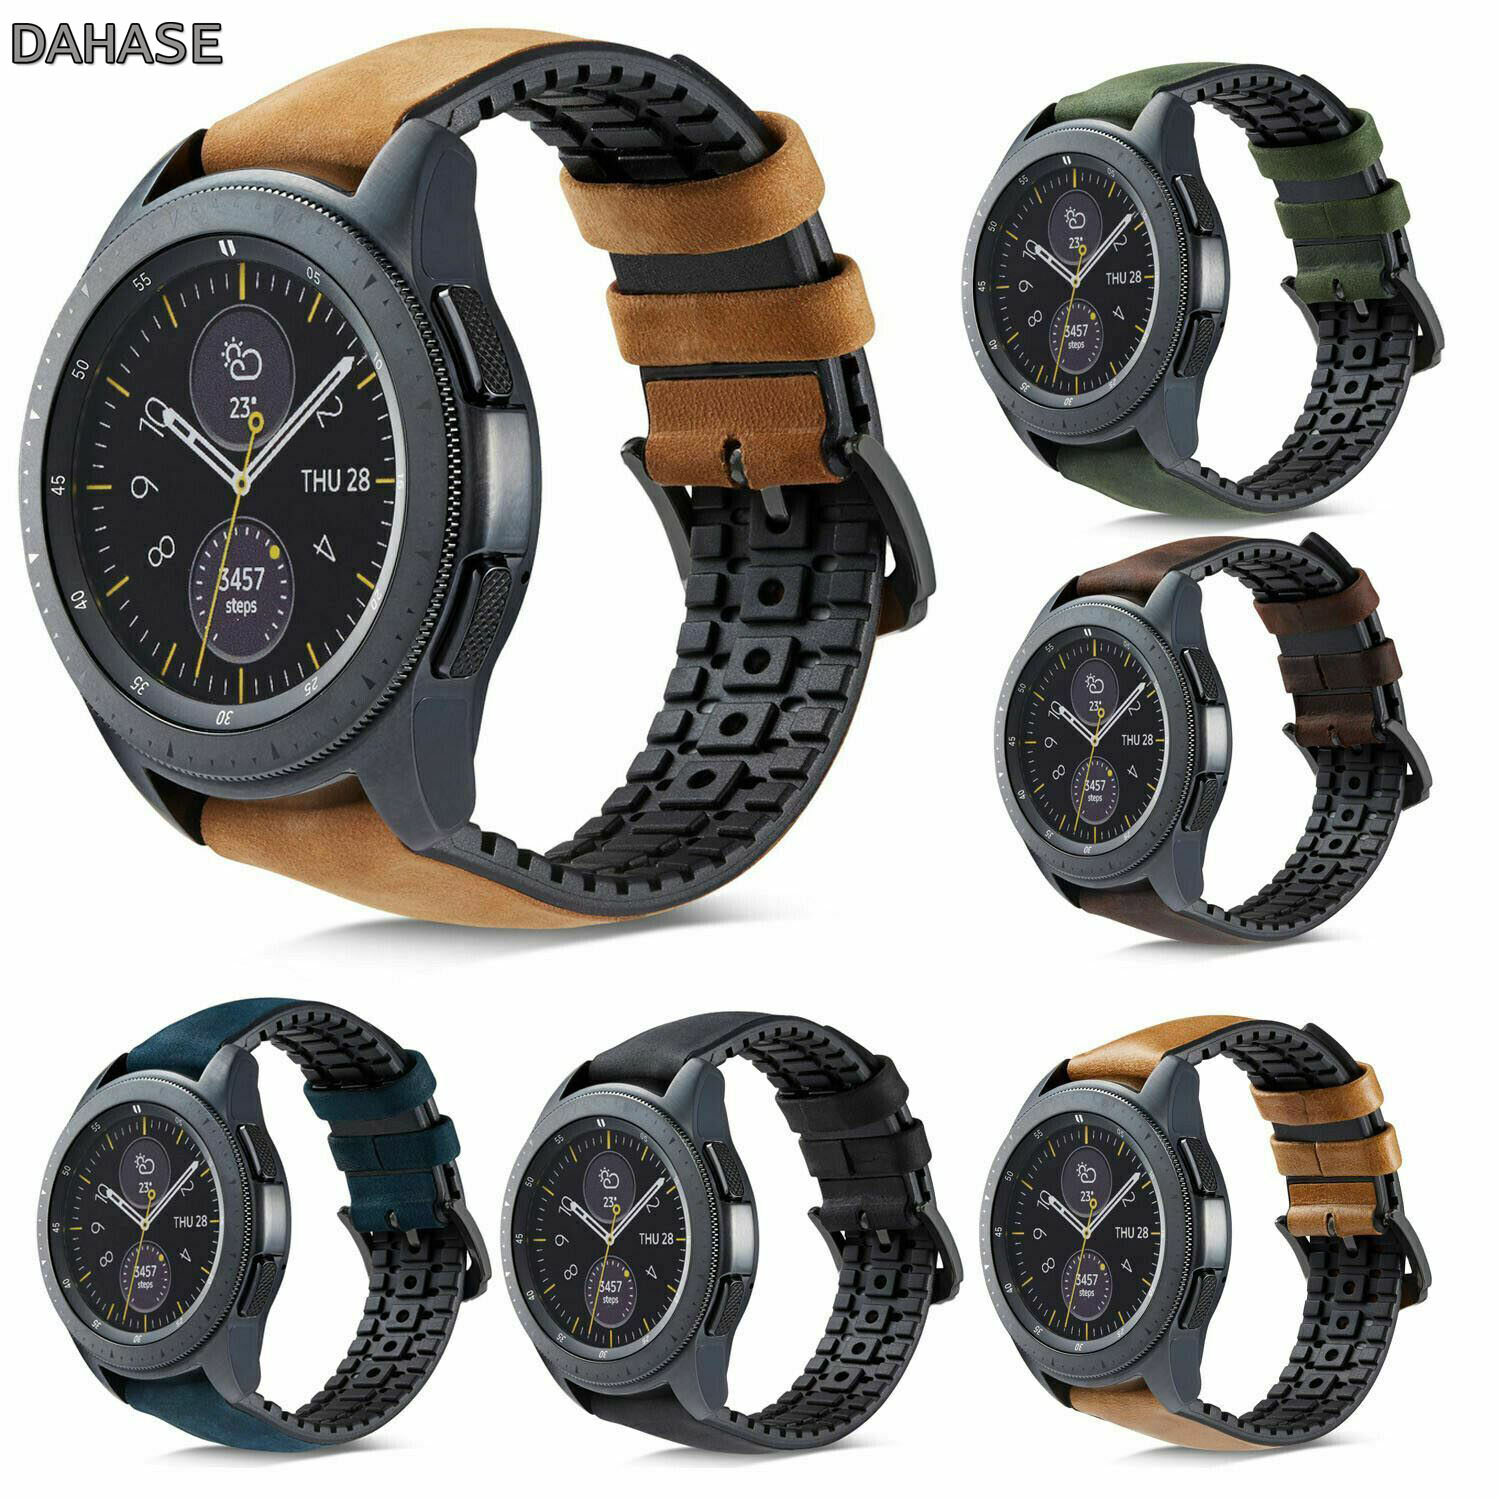 <font><b>Silicone</b></font> Genuine Leather Watchband <font><b>20mm</b></font> 22mm for Samsung Galaxy Watch 42mm 46mm R810/R800 Quick Release <font><b>Band</b></font> Strap <font><b>Bracelet</b></font> image